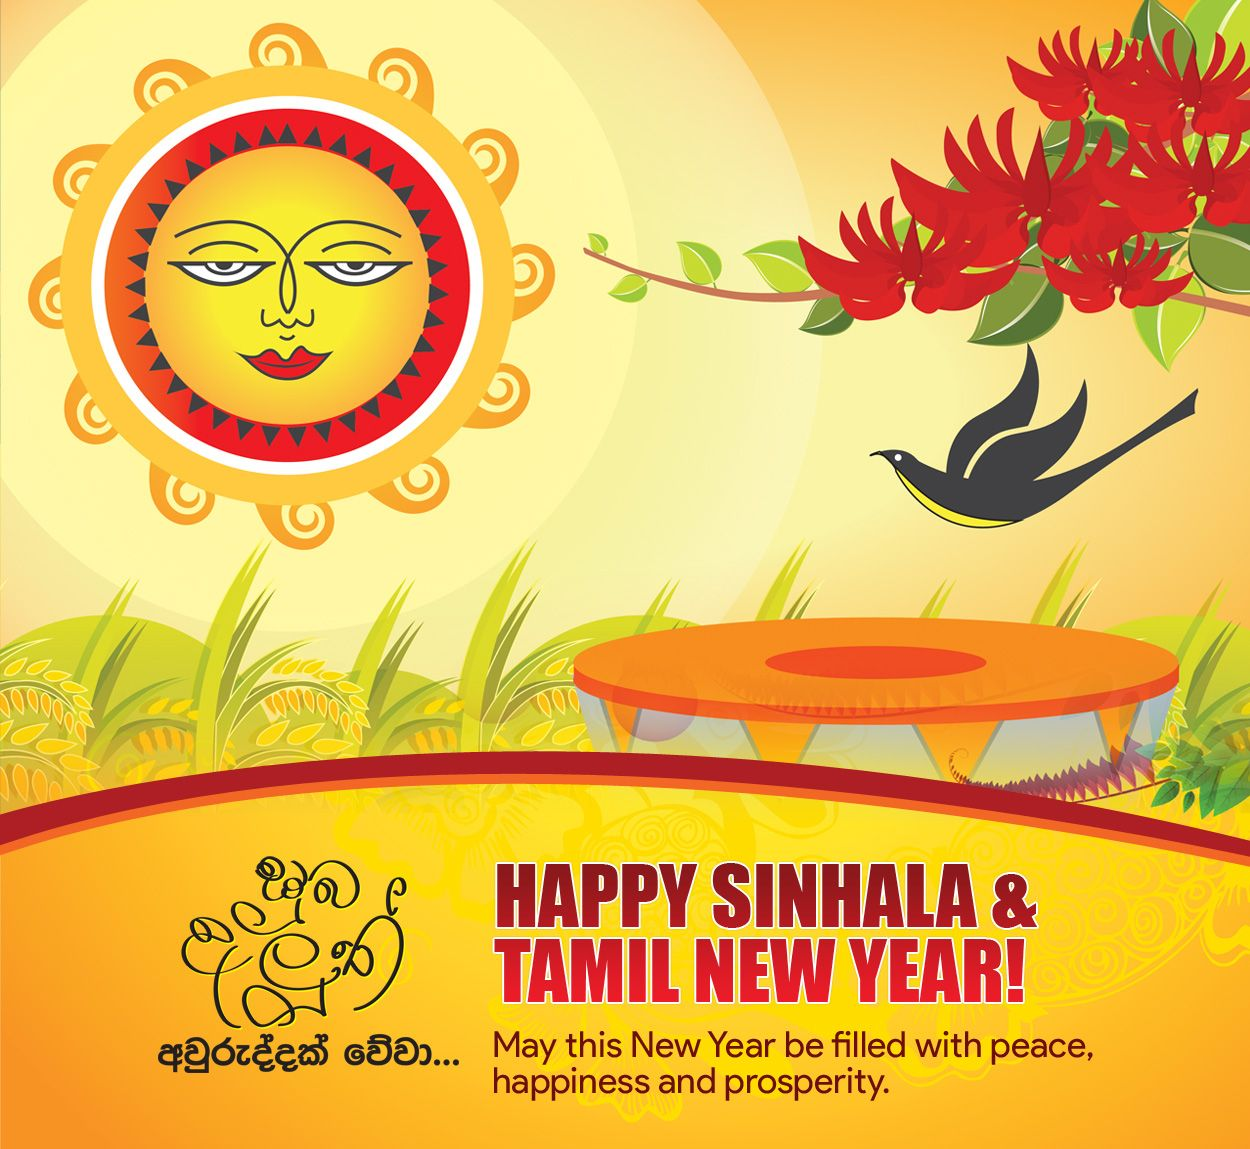 Sinhala And Tamil New Year 2019 Sinhala Tamil New Year Sinhala New Year Wishes Business Cards Creative